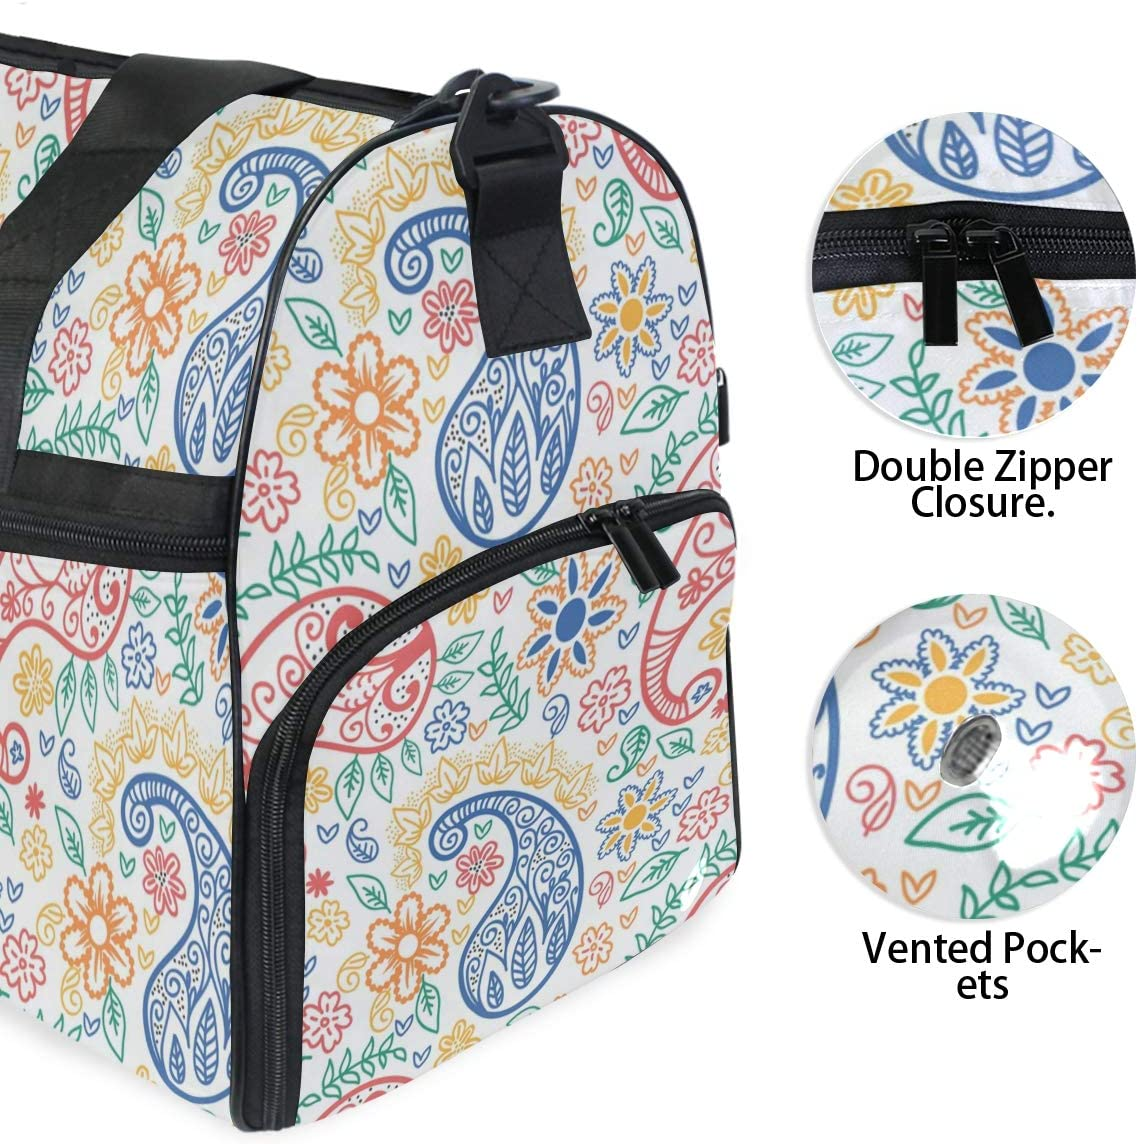 Ethnic Tribal Floral Pattern With Sunflowers And Paisley Vintage Boho Style Sports Gym Bag with Shoes Compartment Travel Duffel Bag for Men Women